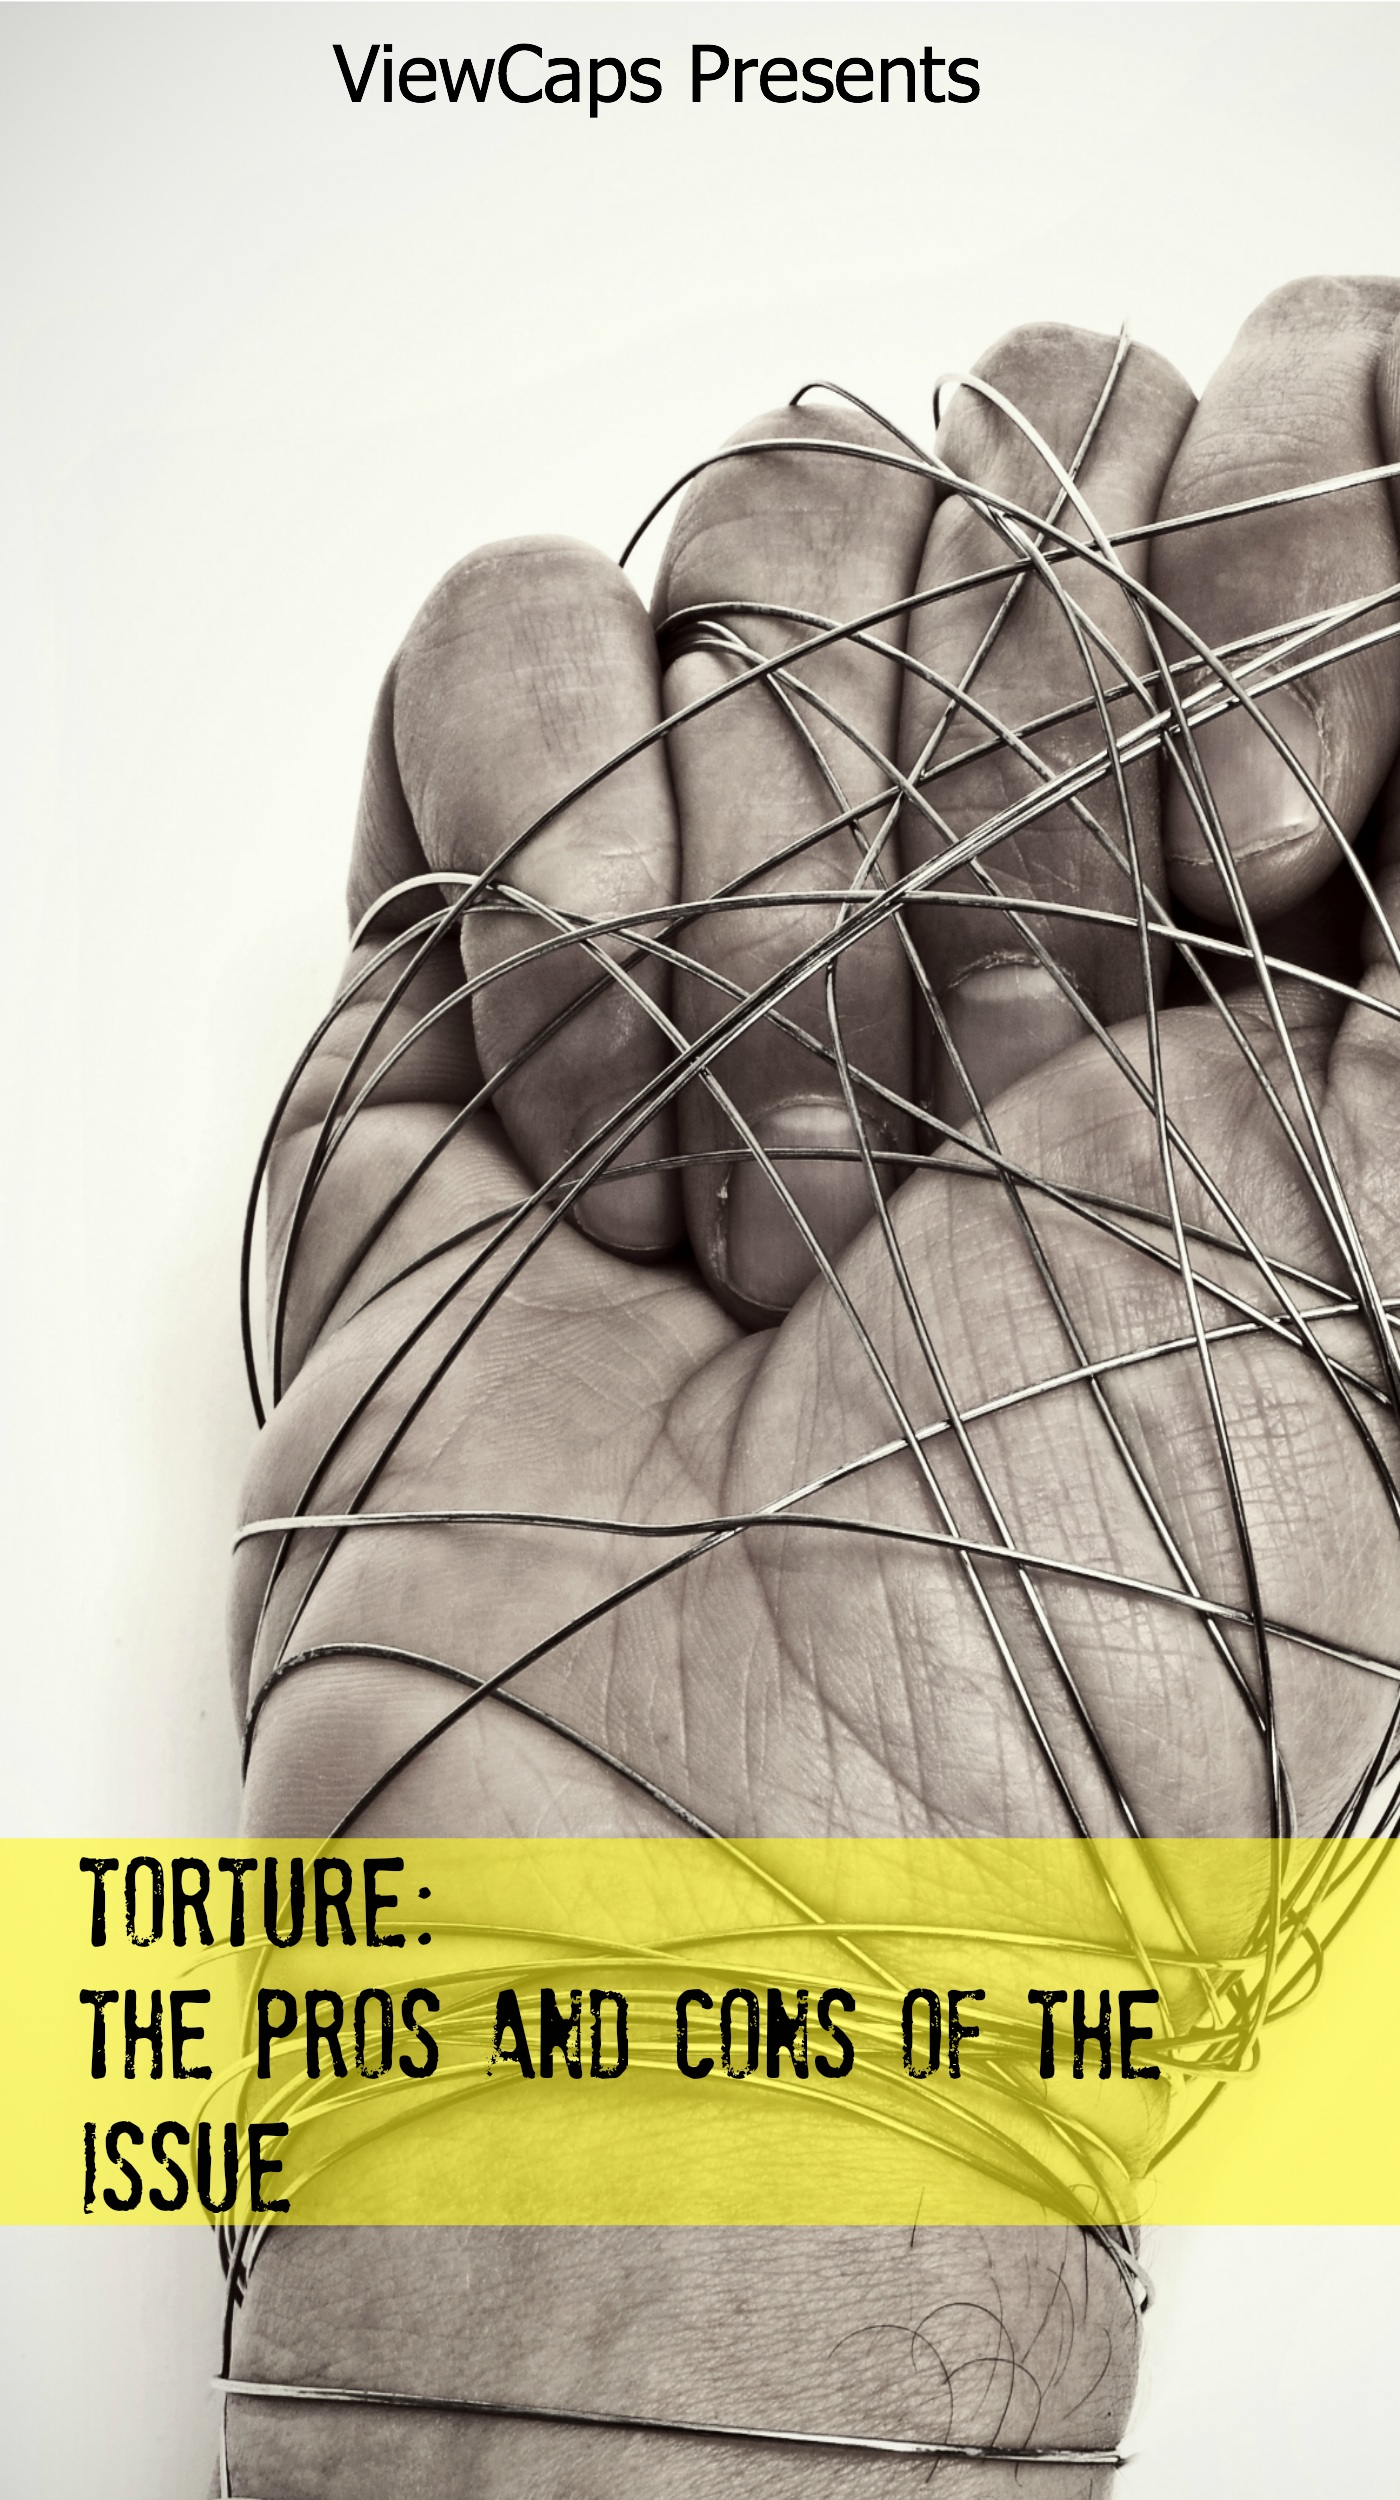 pros and cons of torture essay Pros and cons essay gives the positive and negative information about a topic it is like weighing the good or the negative of a discussion the best way to do this type of essay is to begin with brainstorming all the pros and cons the next step is deciding on a side of an argument and putting this into a thesis evidence should be given for both the pros.